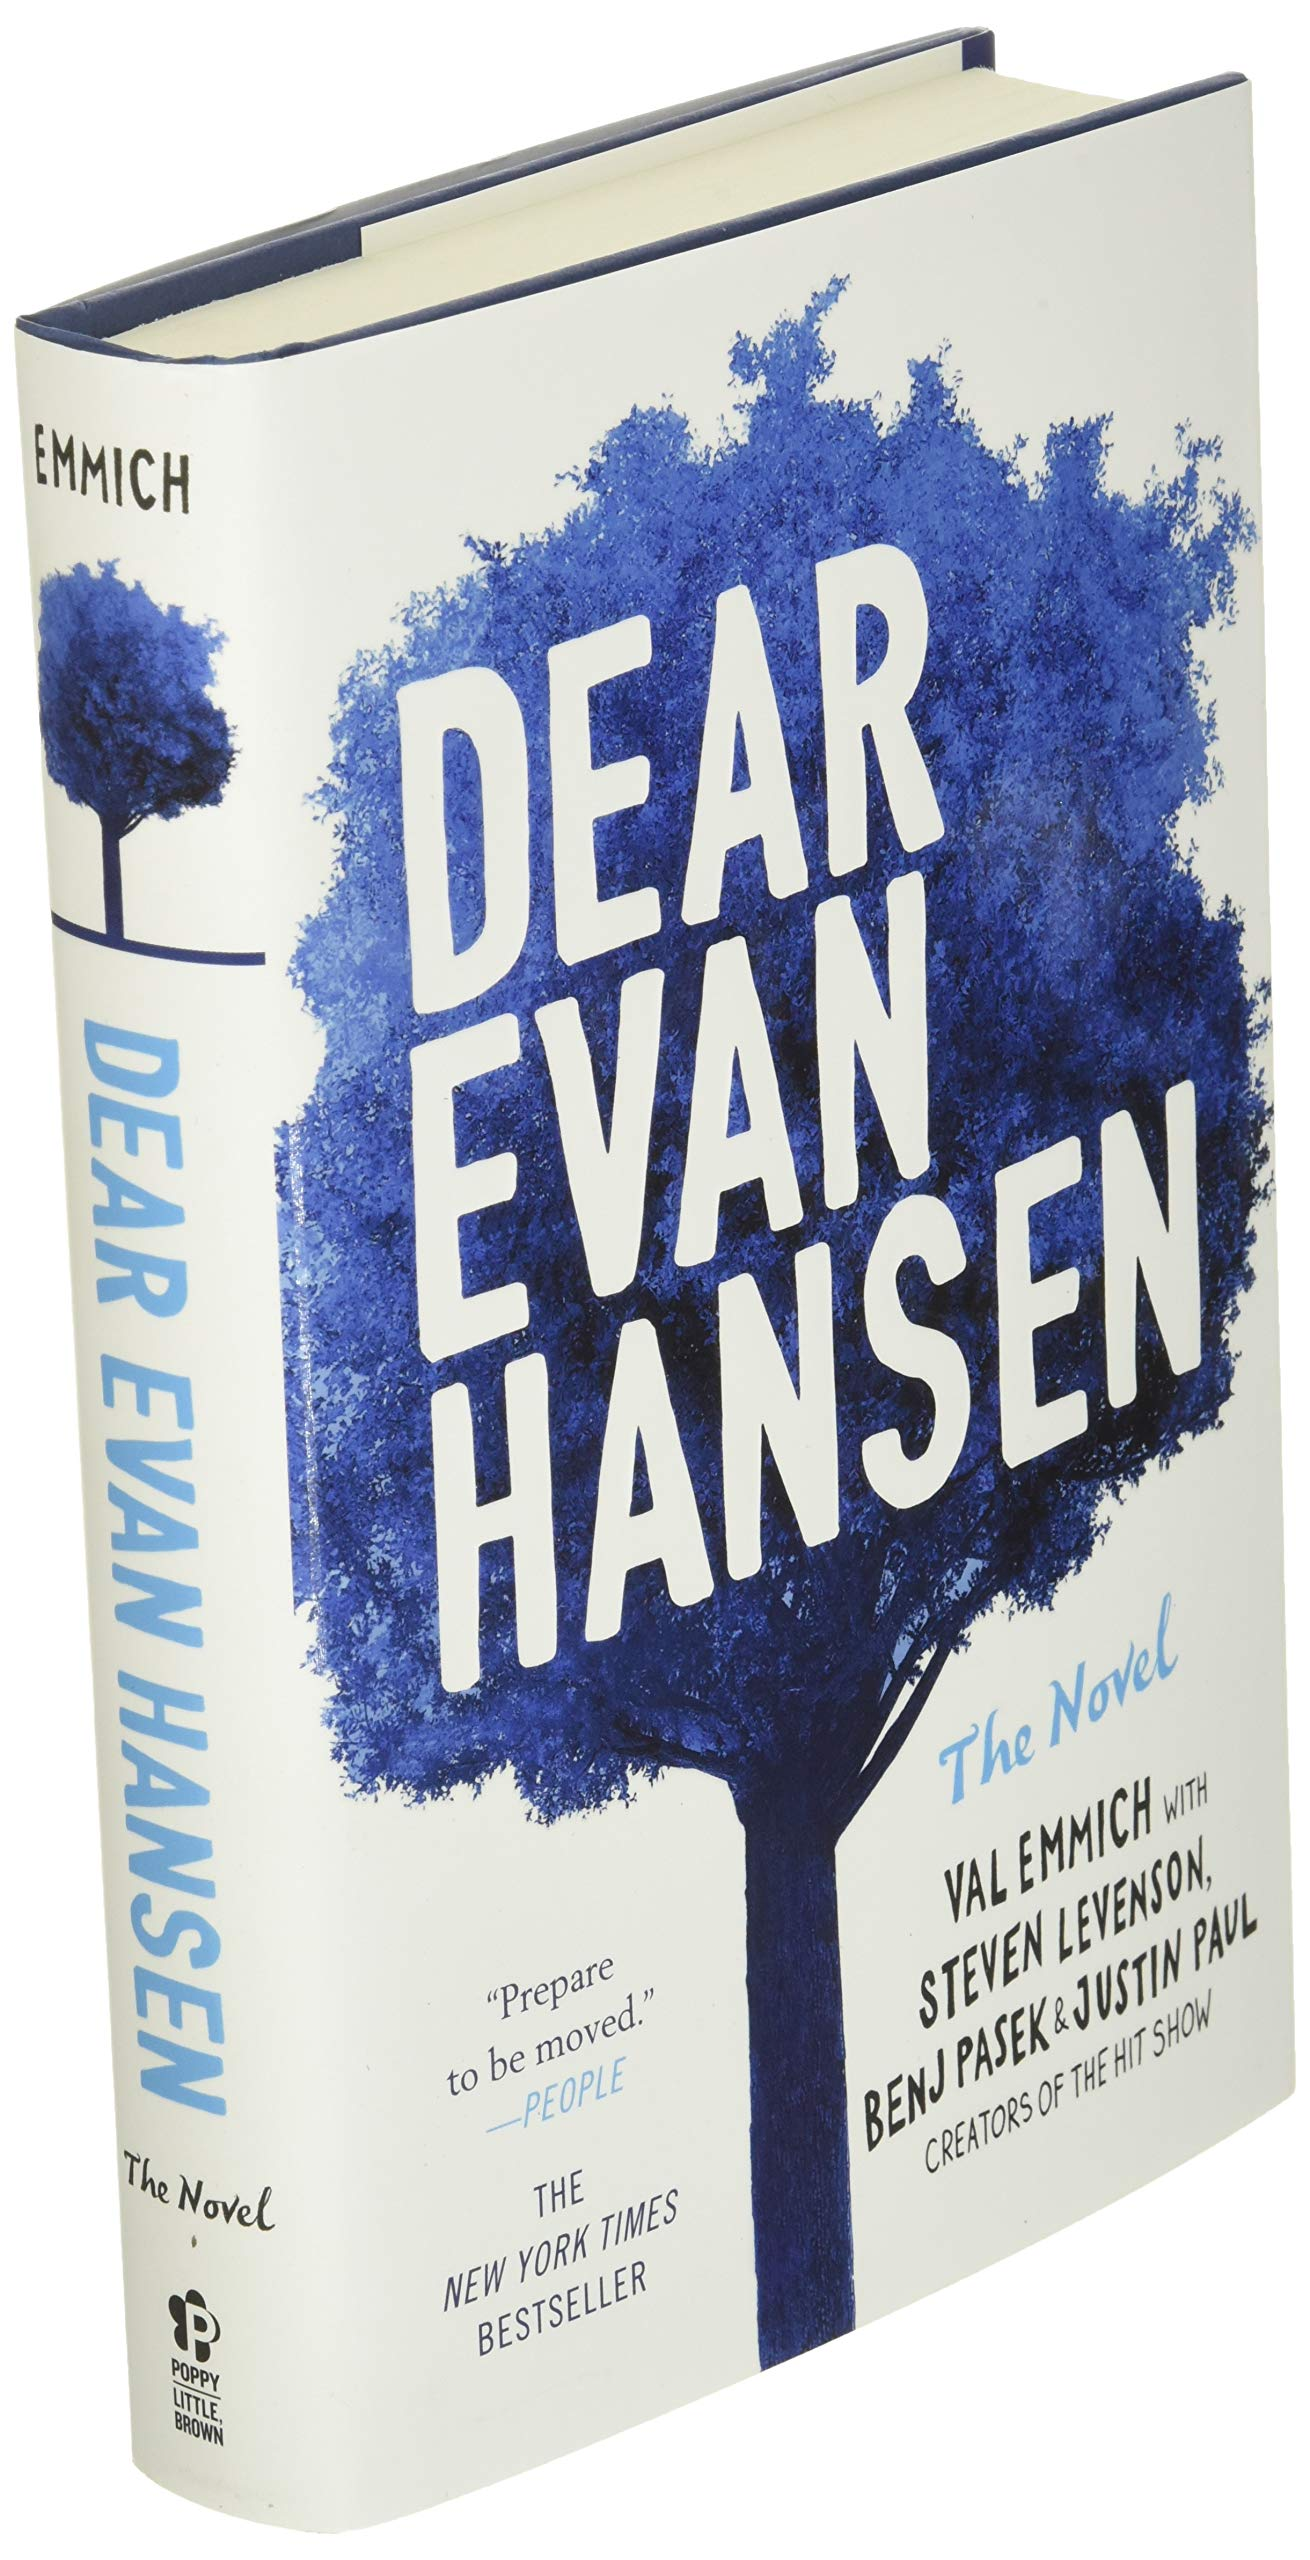 Amazon Com Dear Evan Hansen The Novel 9780316420235 Emmich Val Levenson Steven Pasek Benj Paul Justin Books The official working with lemons 🍋 when life gives you 🍋s, make movies 🎥 address: amazon com dear evan hansen the novel